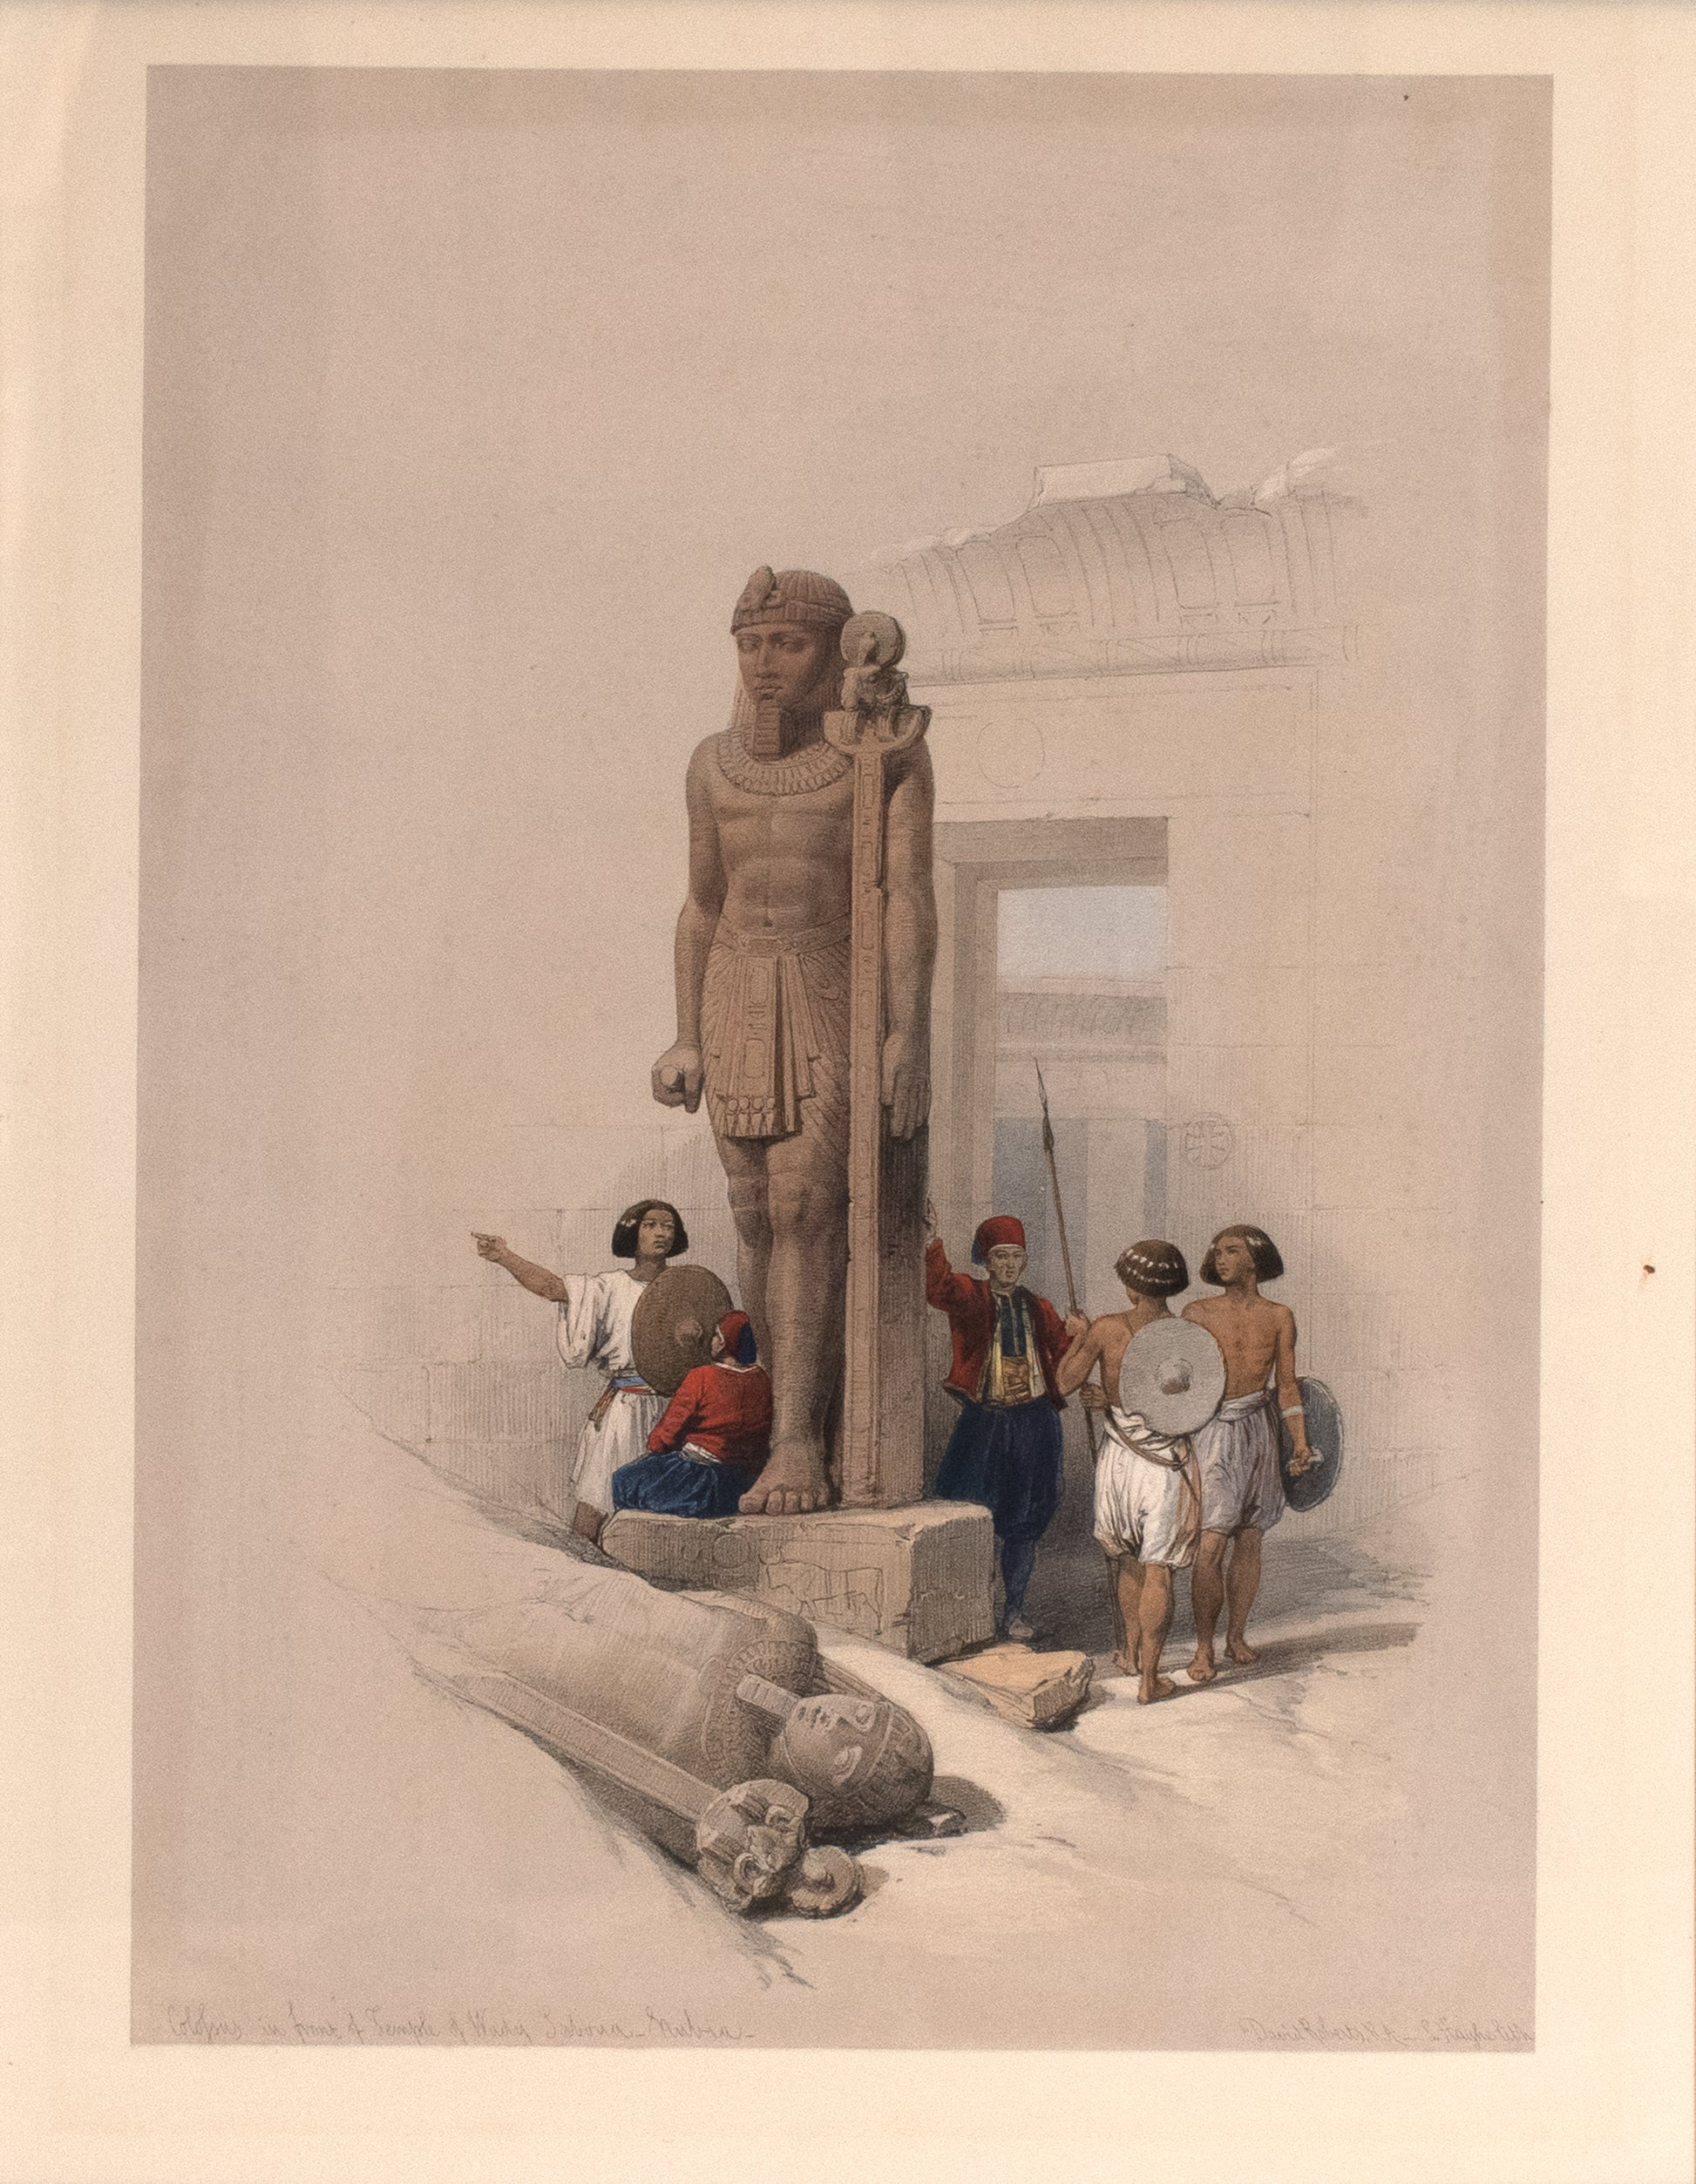 Colossus in front of Temple of Wady Sebona, Nubia: David Roberts 1846-49